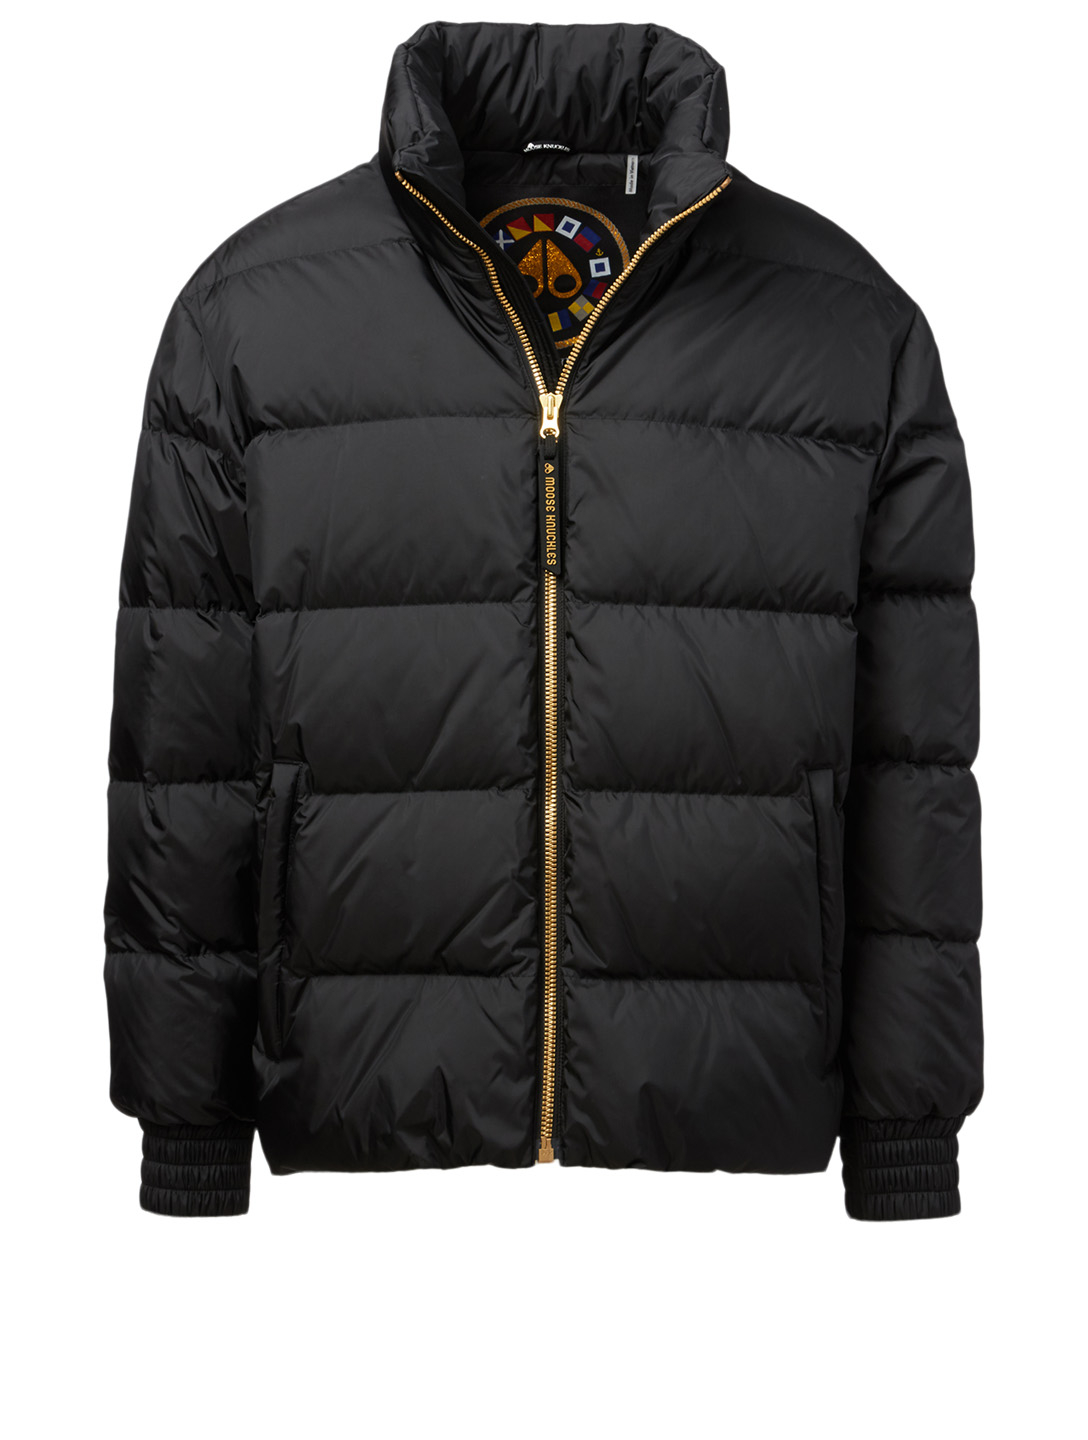 MOOSE KNUCKLES Gold Collection Culross Jacket Men's Black